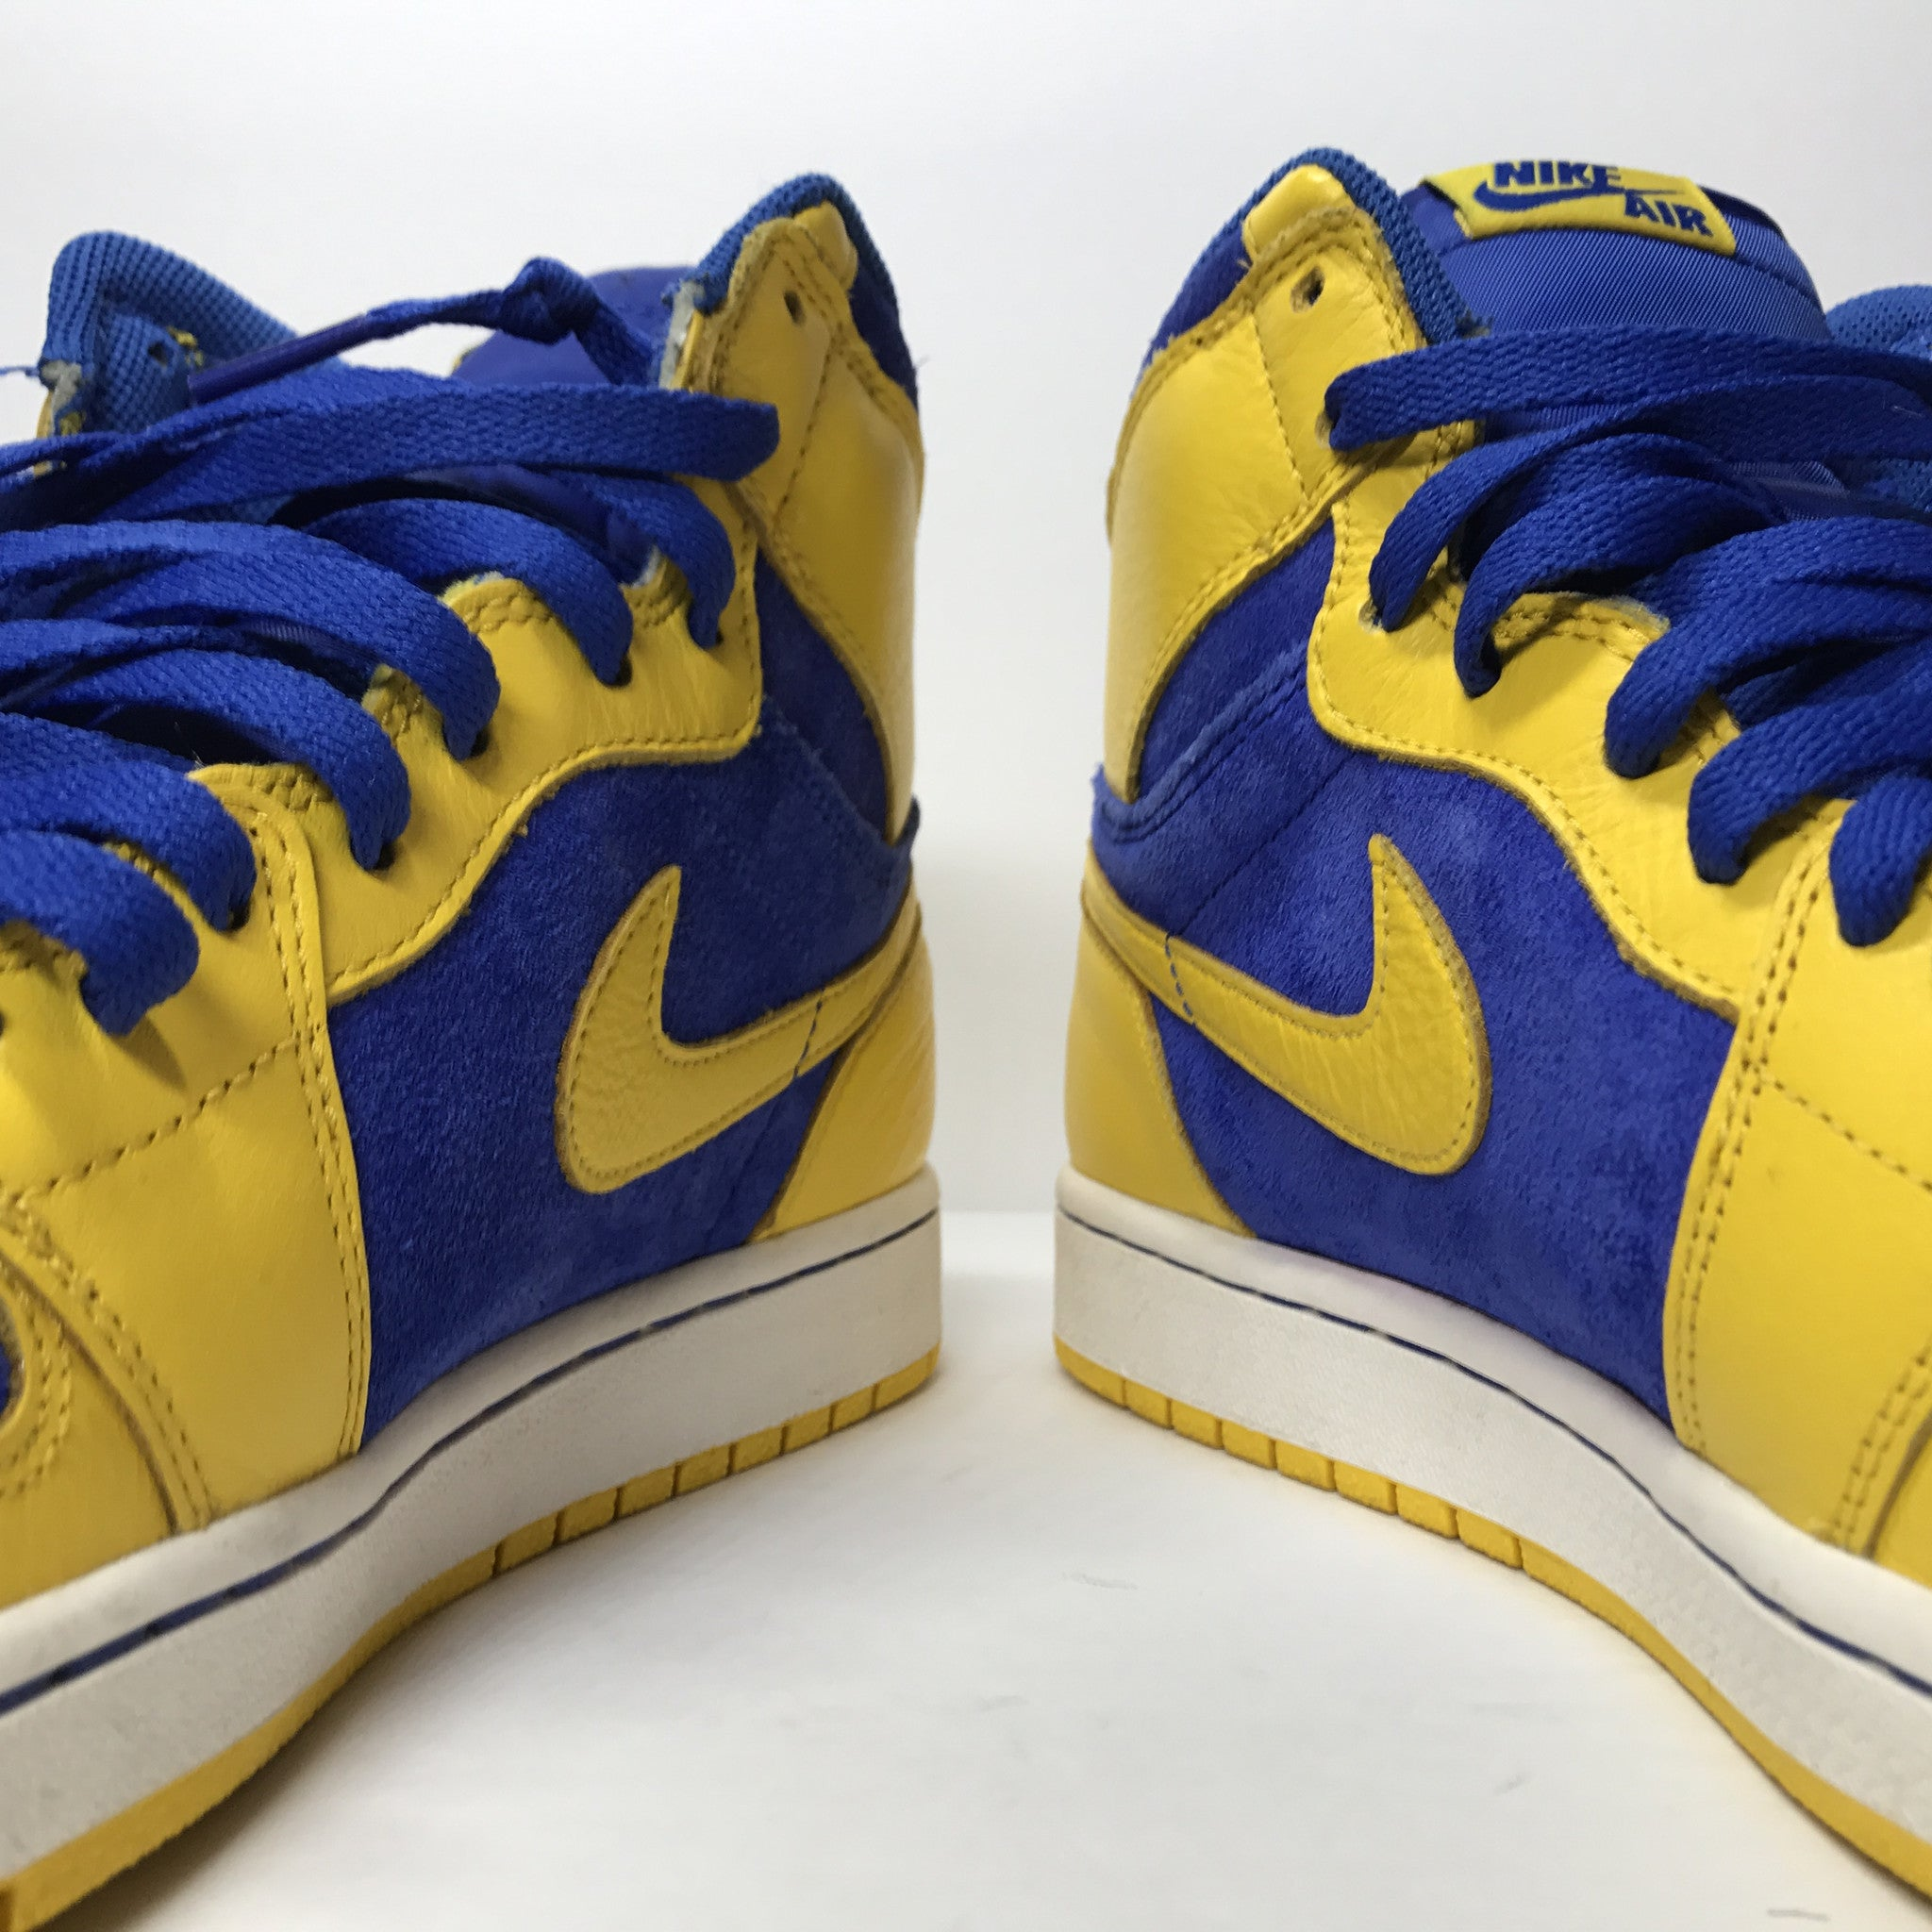 Nike Air Jordan 1 I Retro High OG Laney Size 9.5